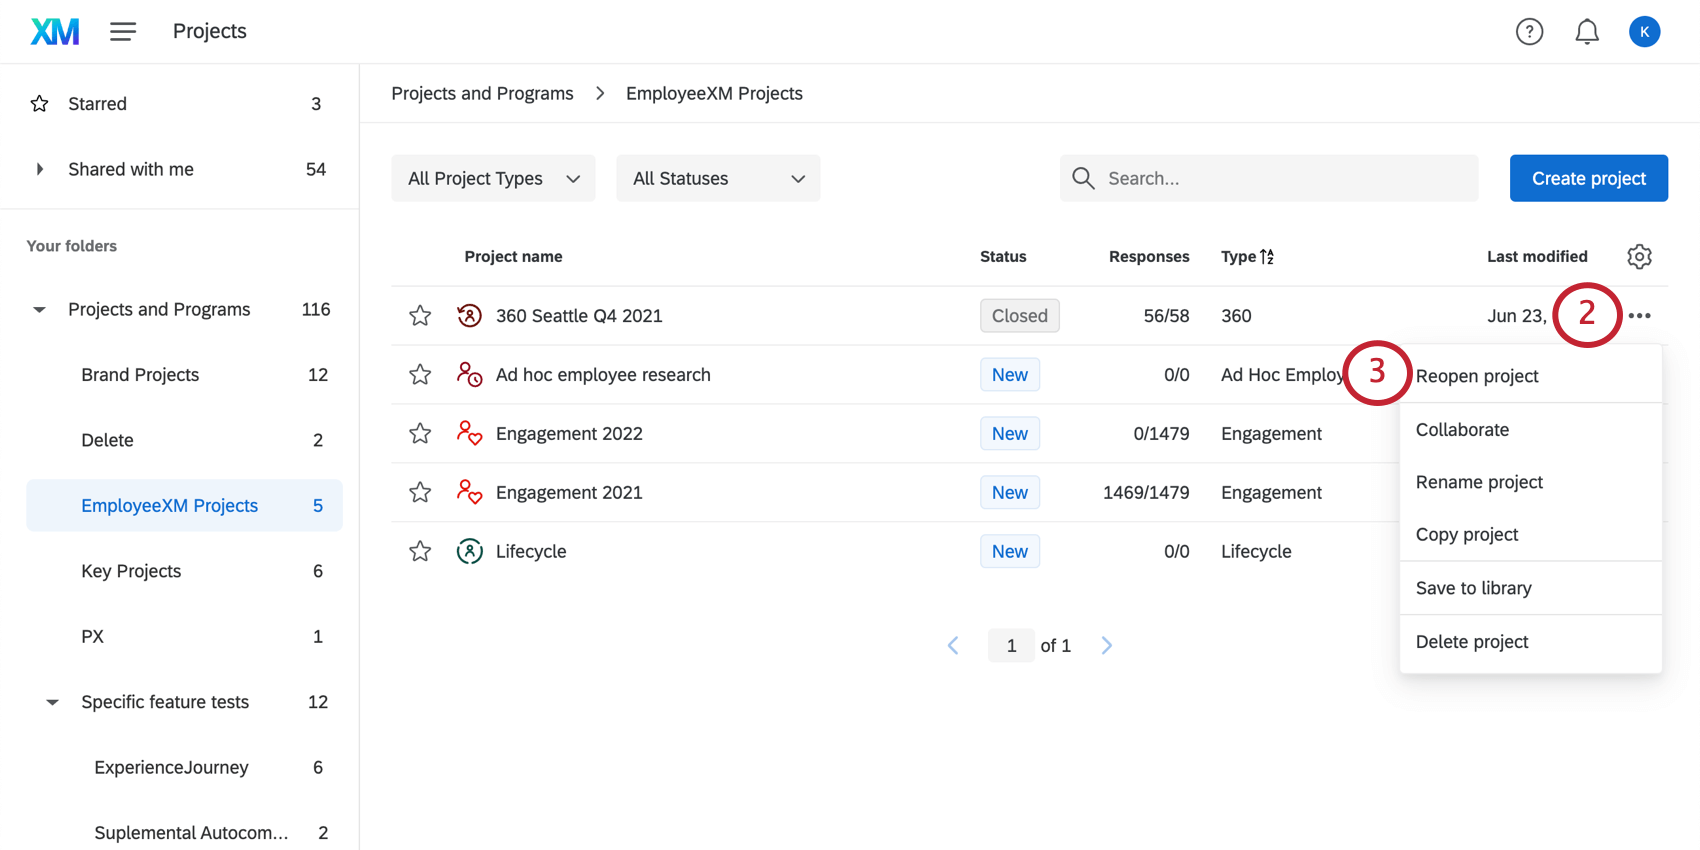 Using the dropdown menu next to the project to Reopen the project